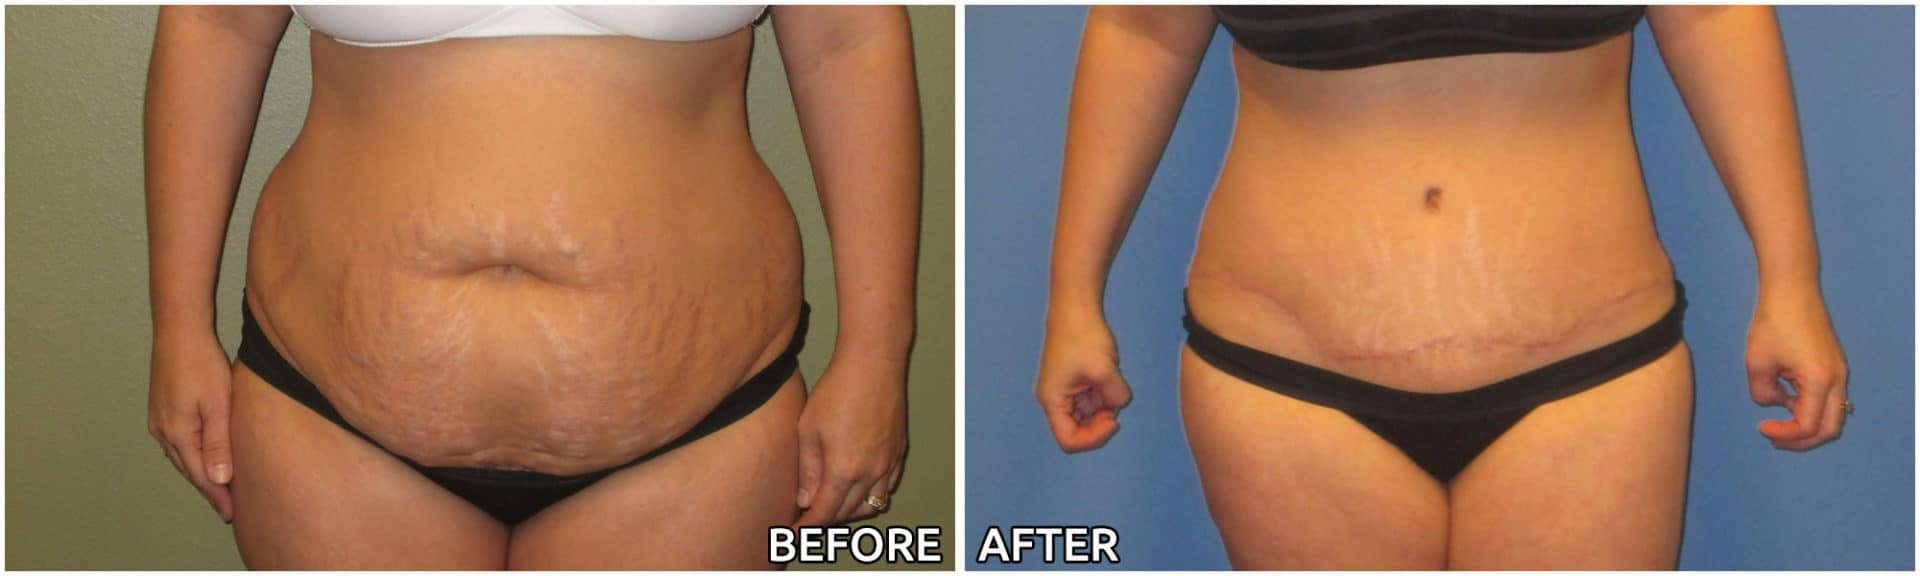 abdominoplasty6